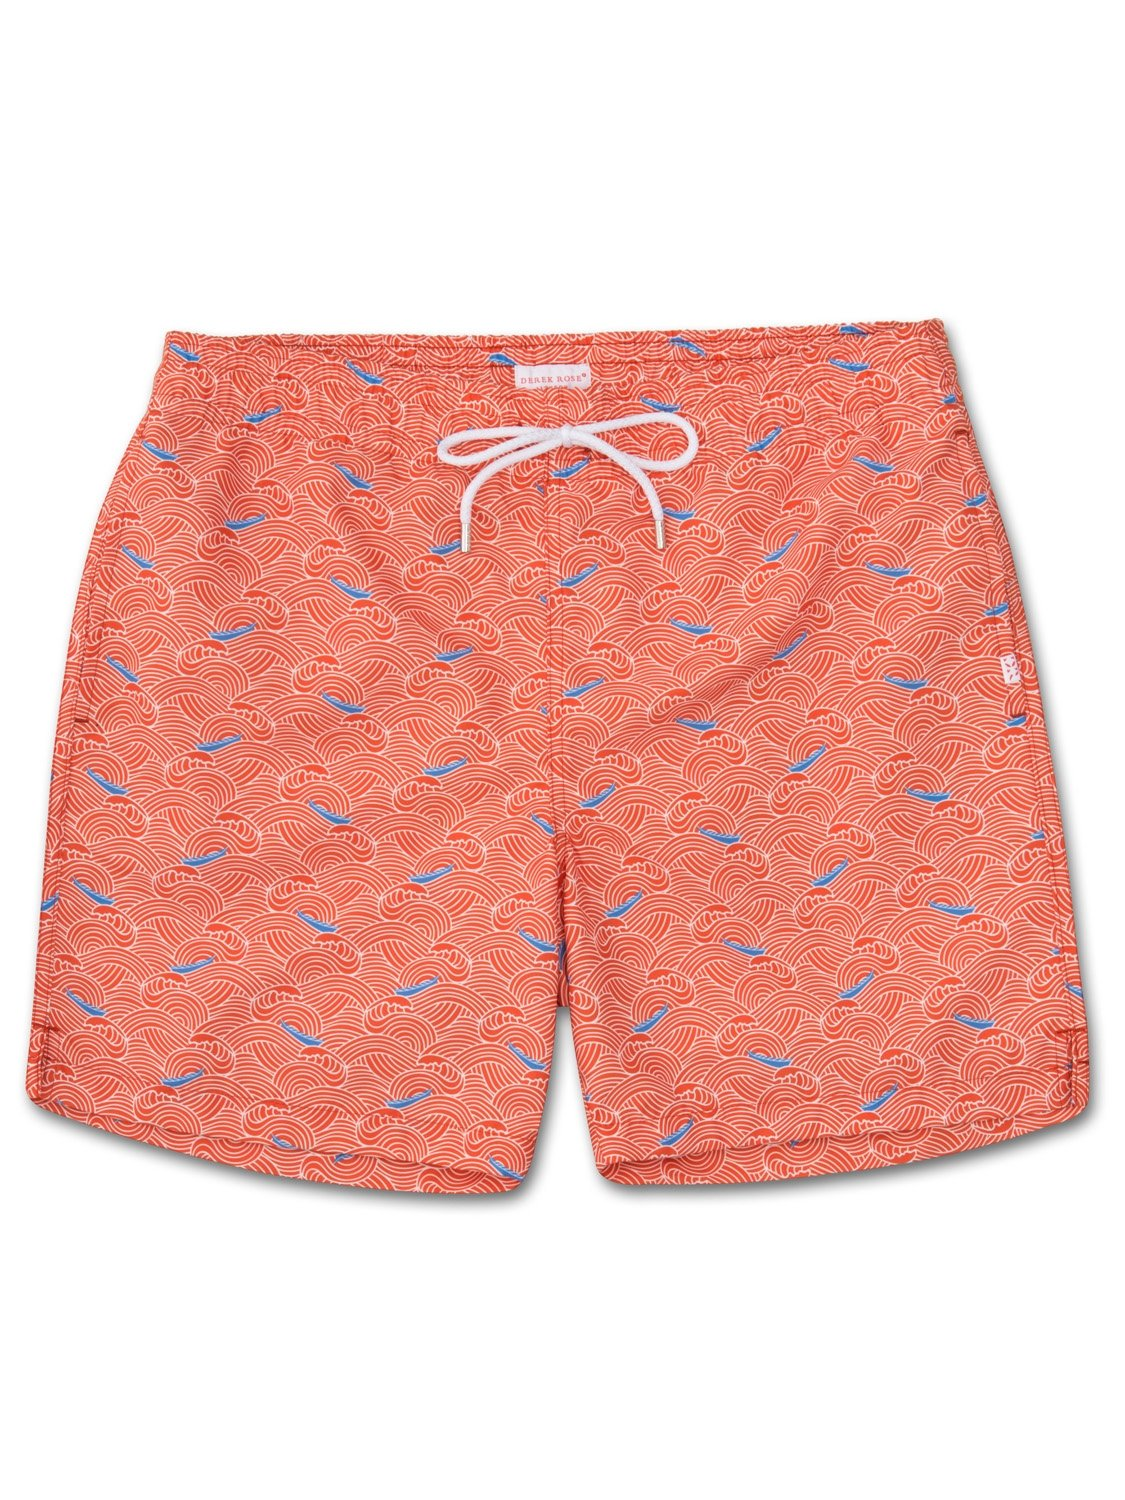 Men's Classic Fit Swim Shorts Maui 7 Orange